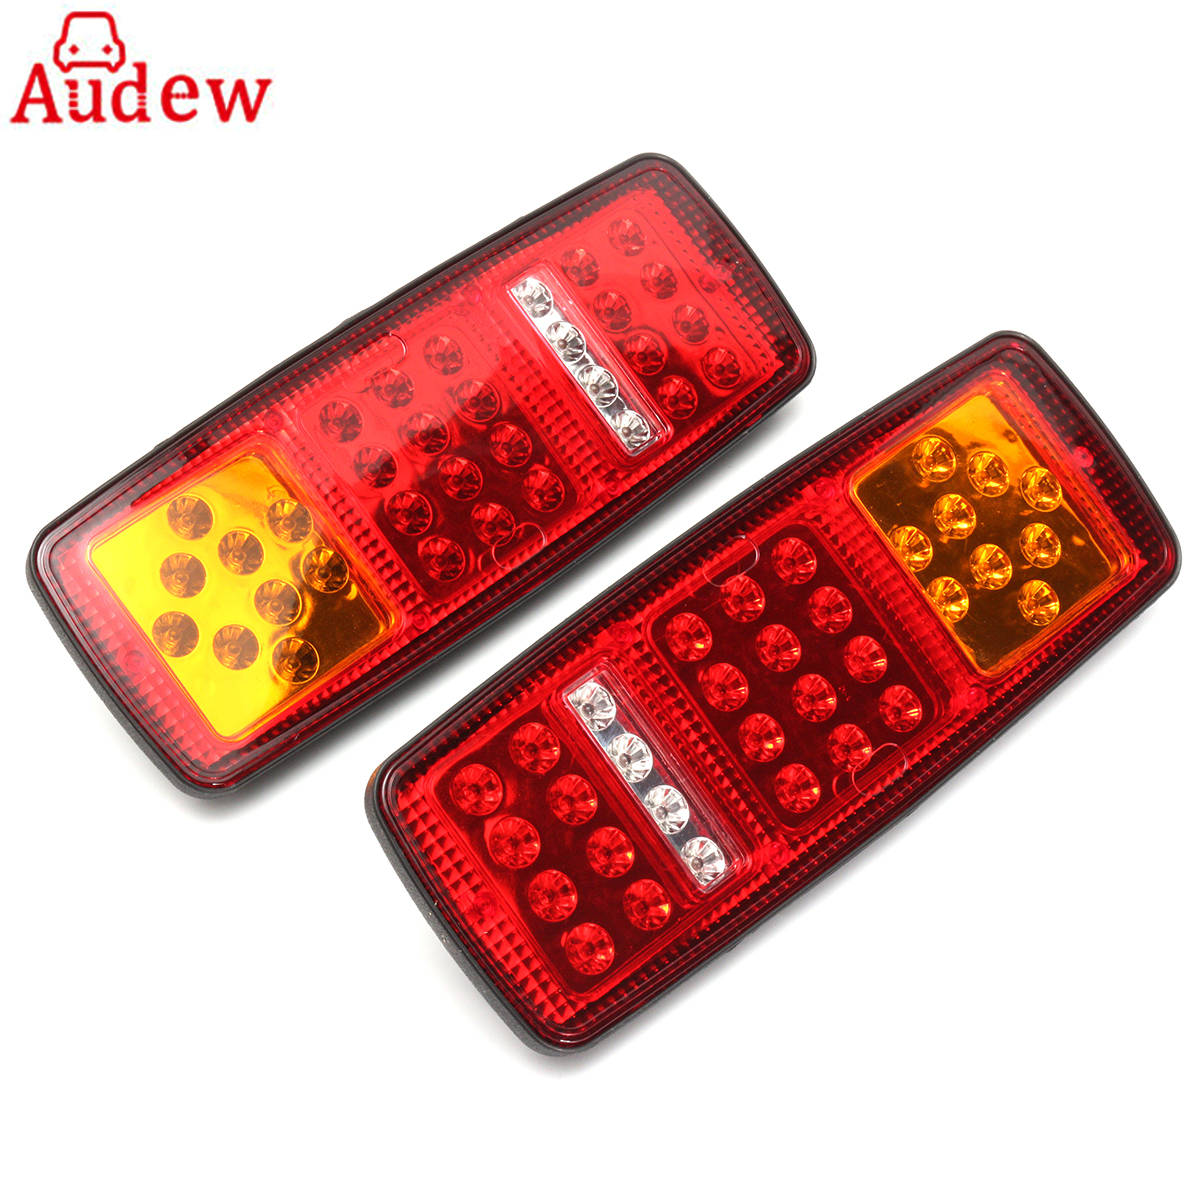 2Pcs 33LED Trailer Tail Lamp Truck Bus for Van Stop Rear Tail Indicator Lights Reverse Lamp 12V -Waterproof